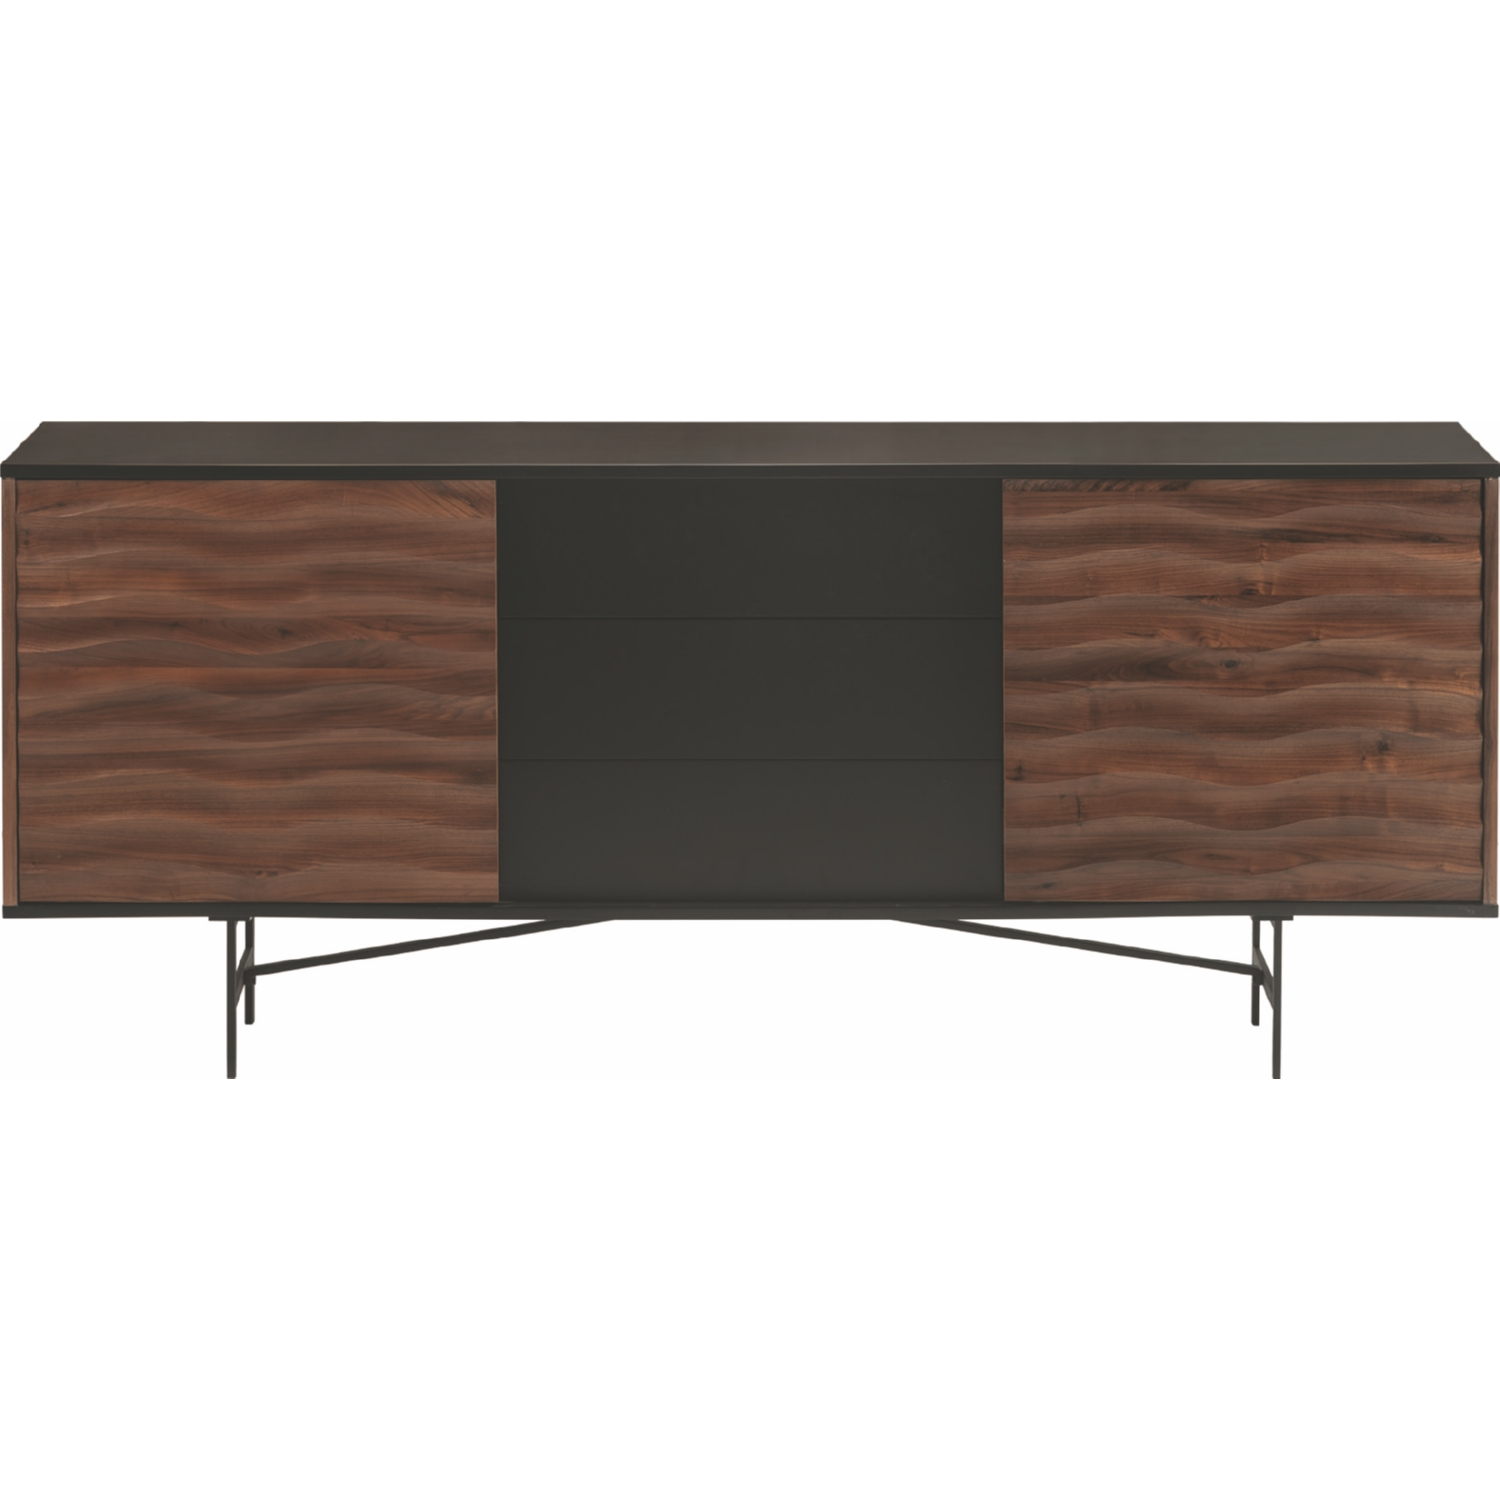 Nuevo Modern Furniture HGPM103 Swell Sideboard Cabinet in in ...